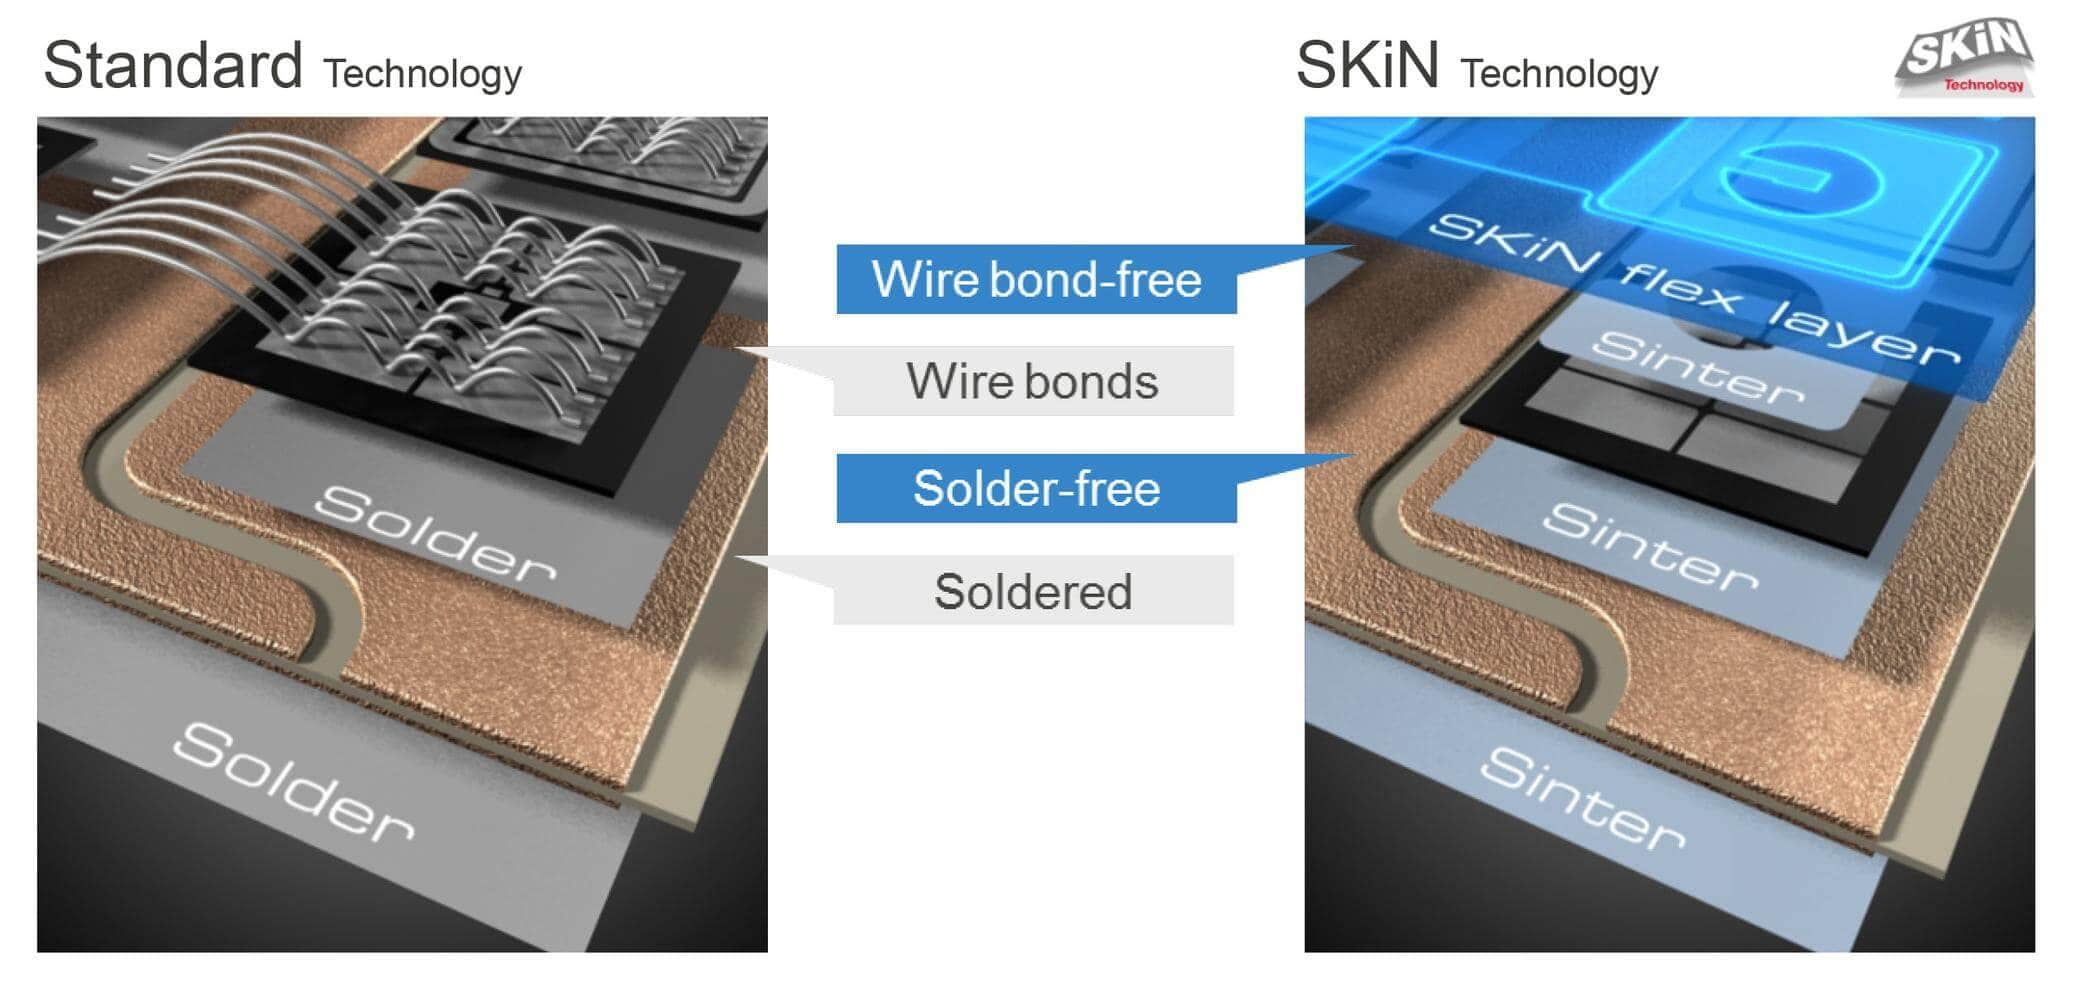 Semikron power module skin technology